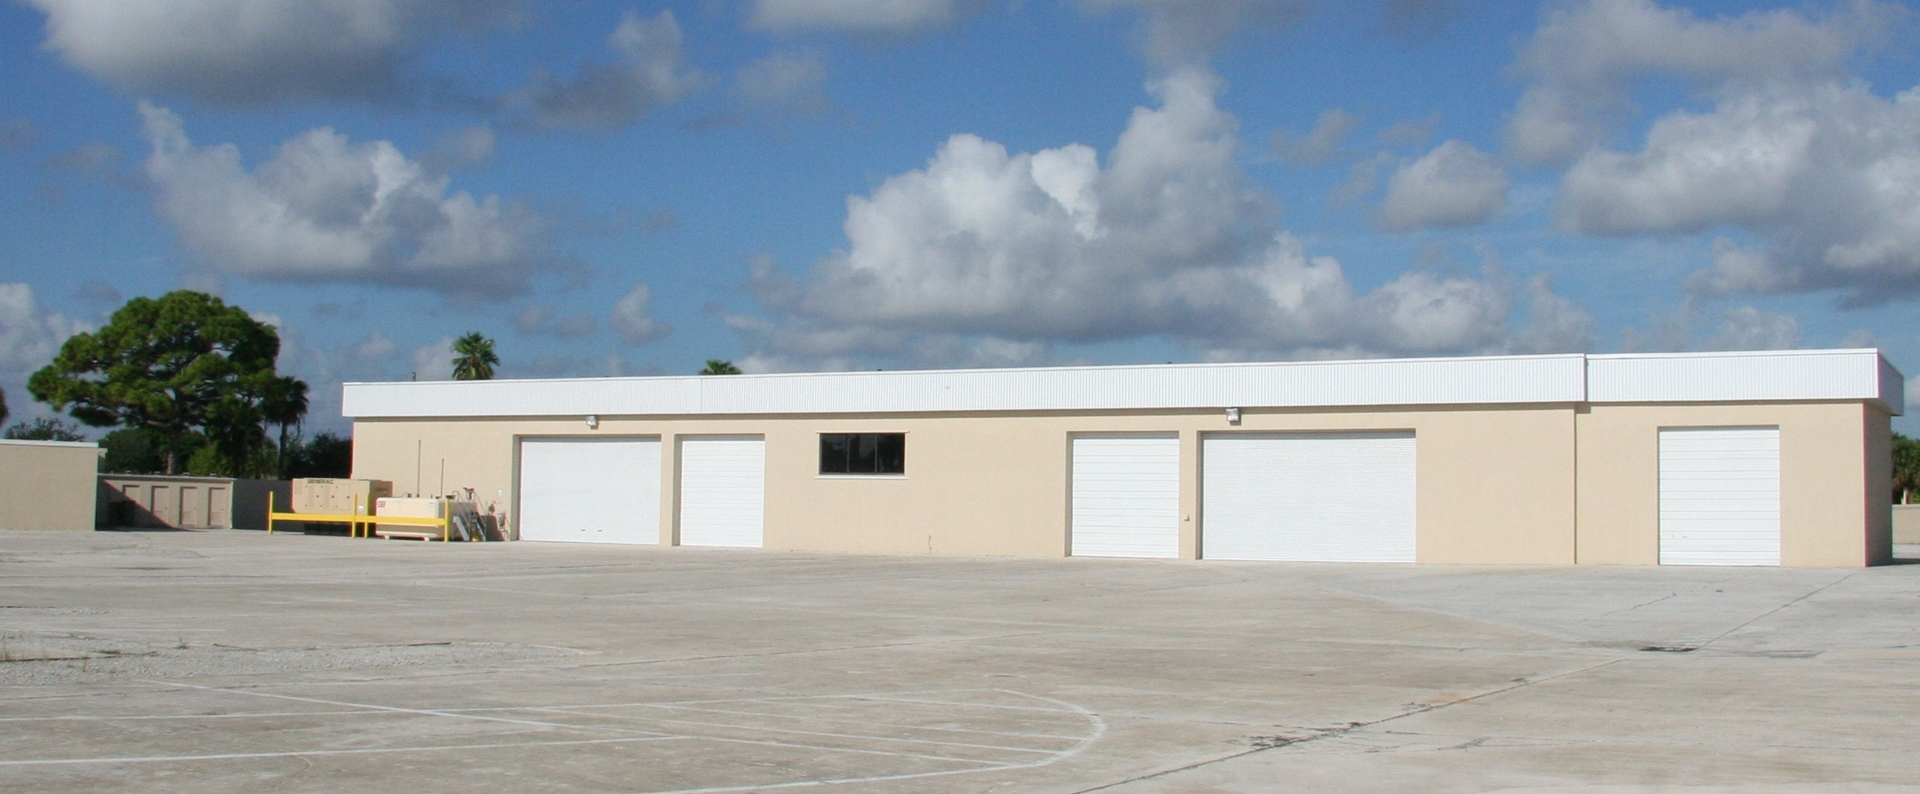 Storage facility storage facility palm beach gardens for Storage units palm beach gardens